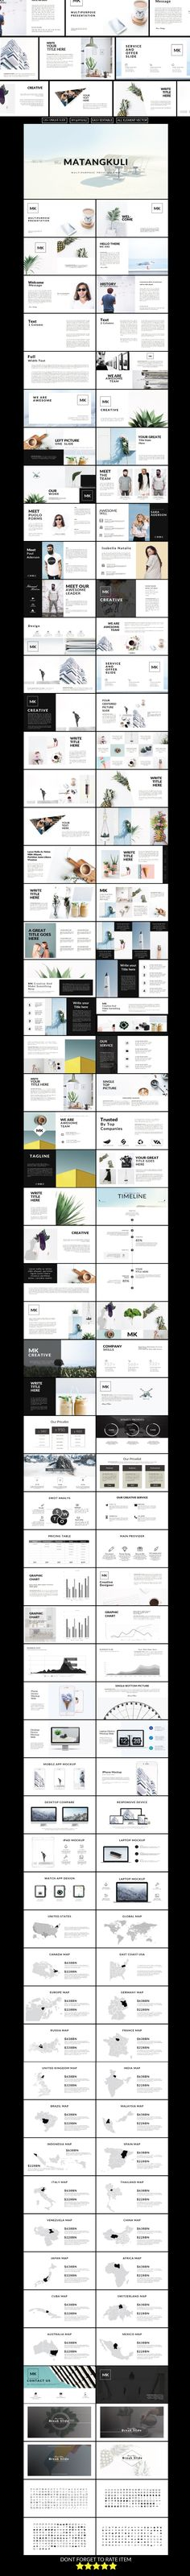 Matangkuli Multipurpose Powerpoint Template - PowerPoint Templates Presentation Templates